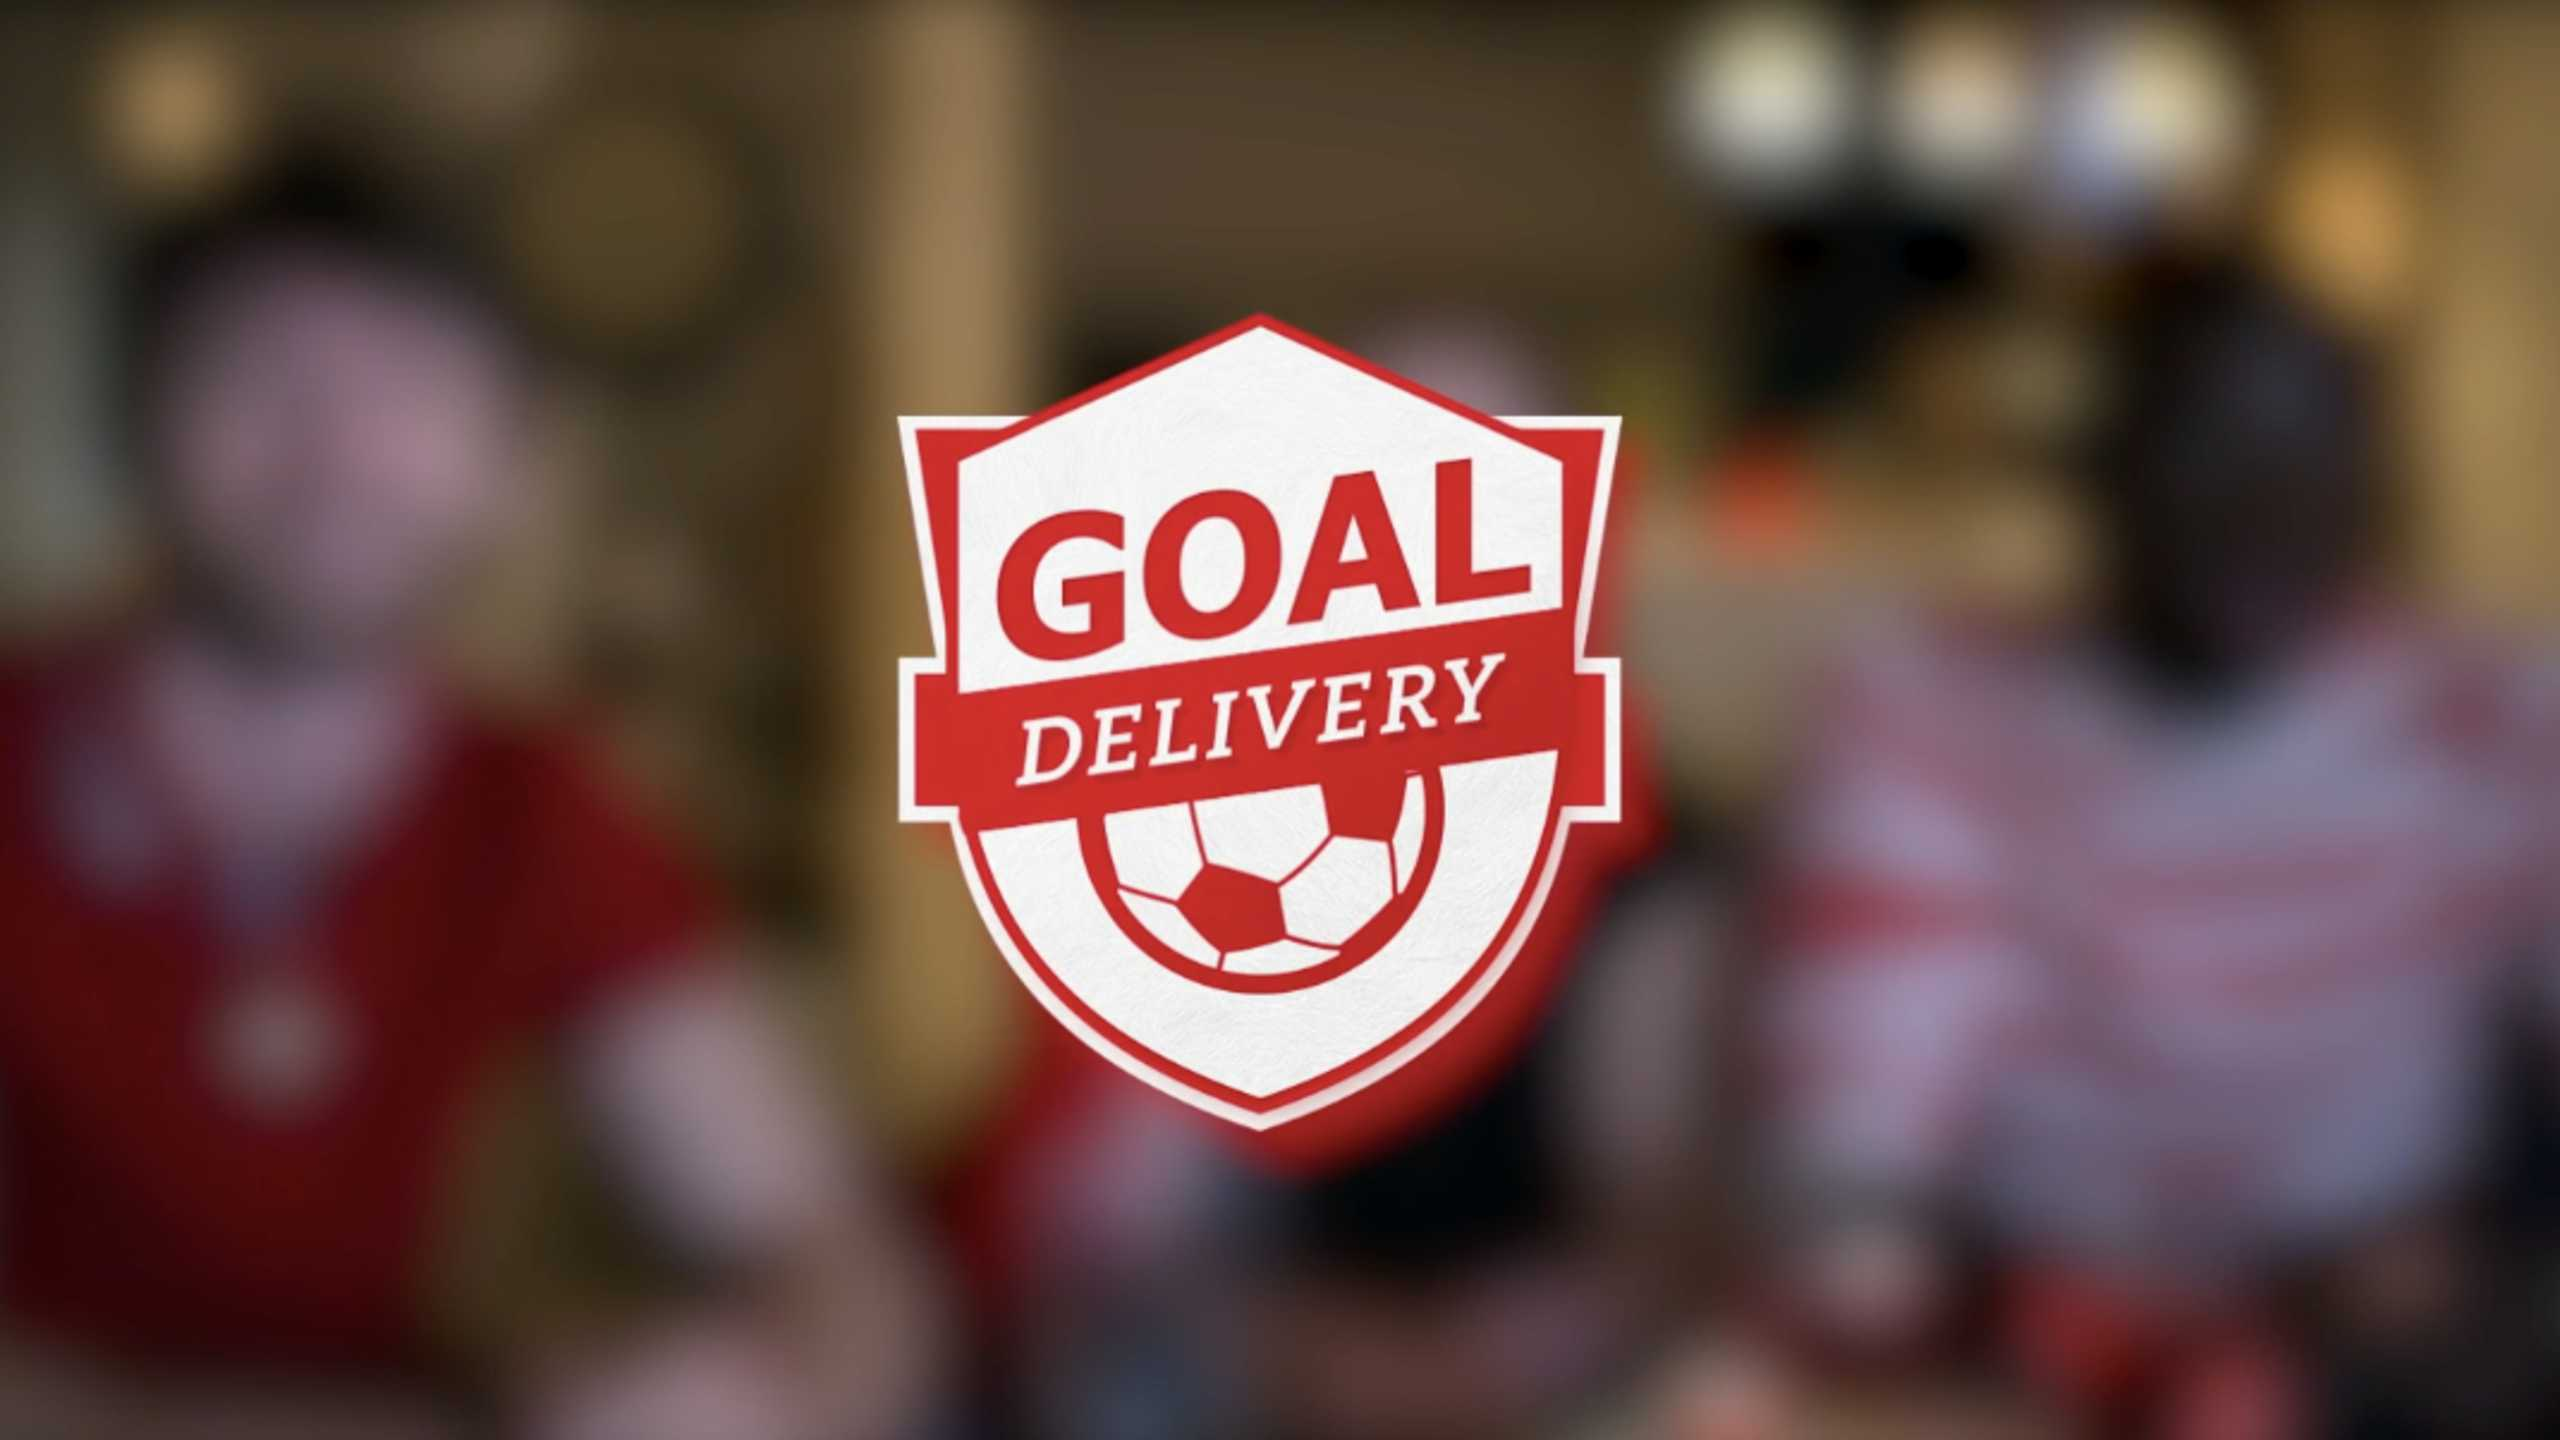 Goal Delivery